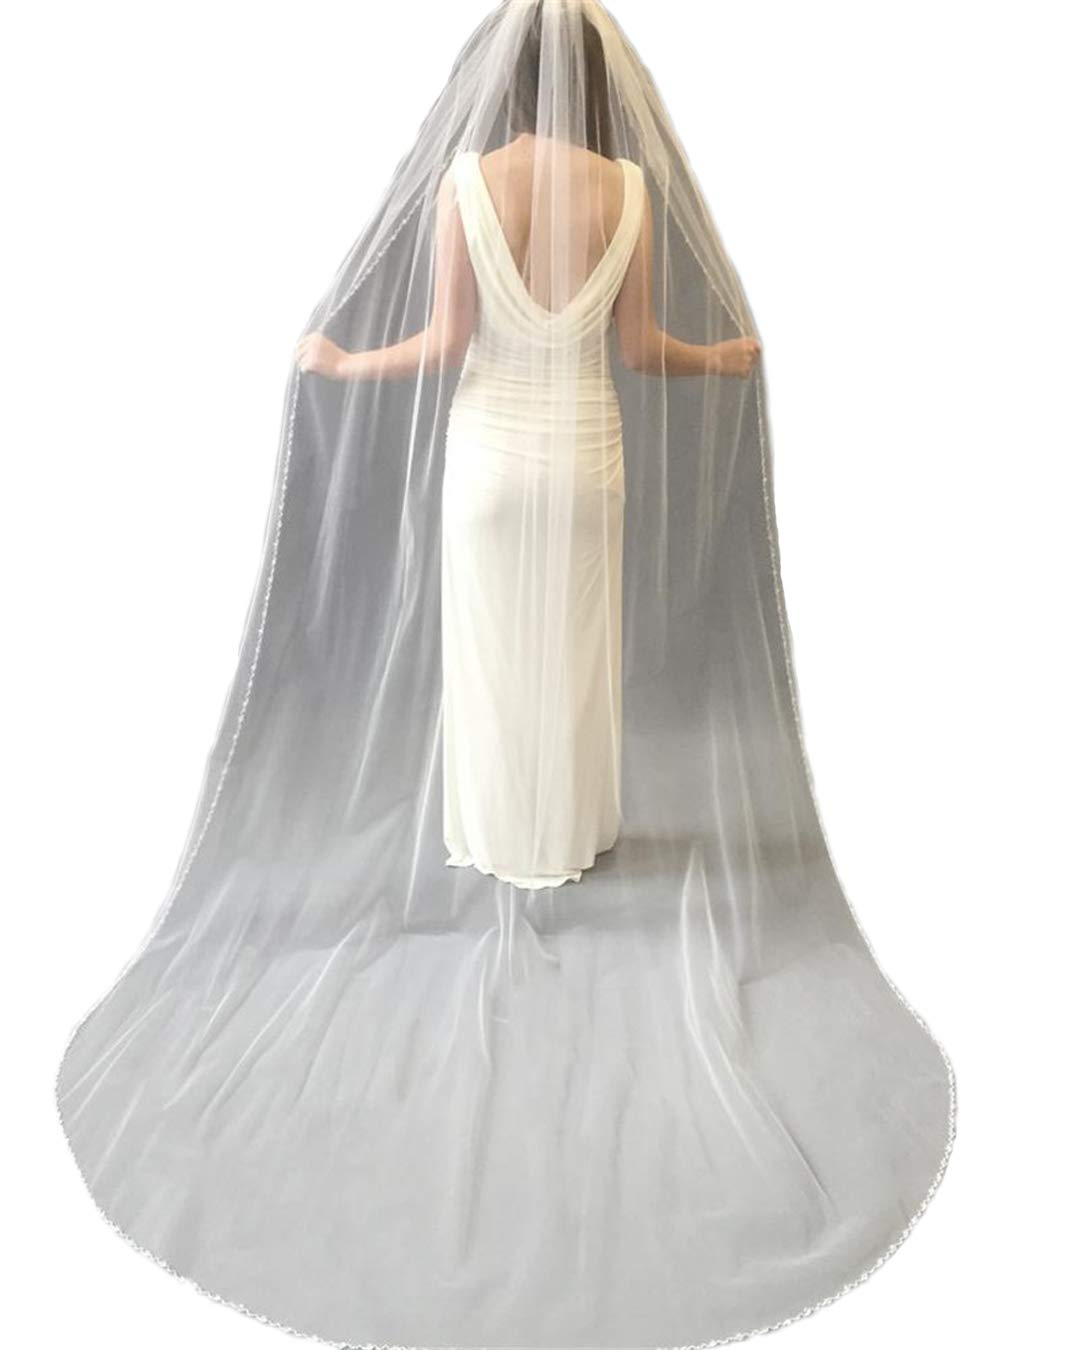 Passat Champagne Single-Tier 3M Cathedral Veil Edged with Clear Beads and Crystals VL-1013